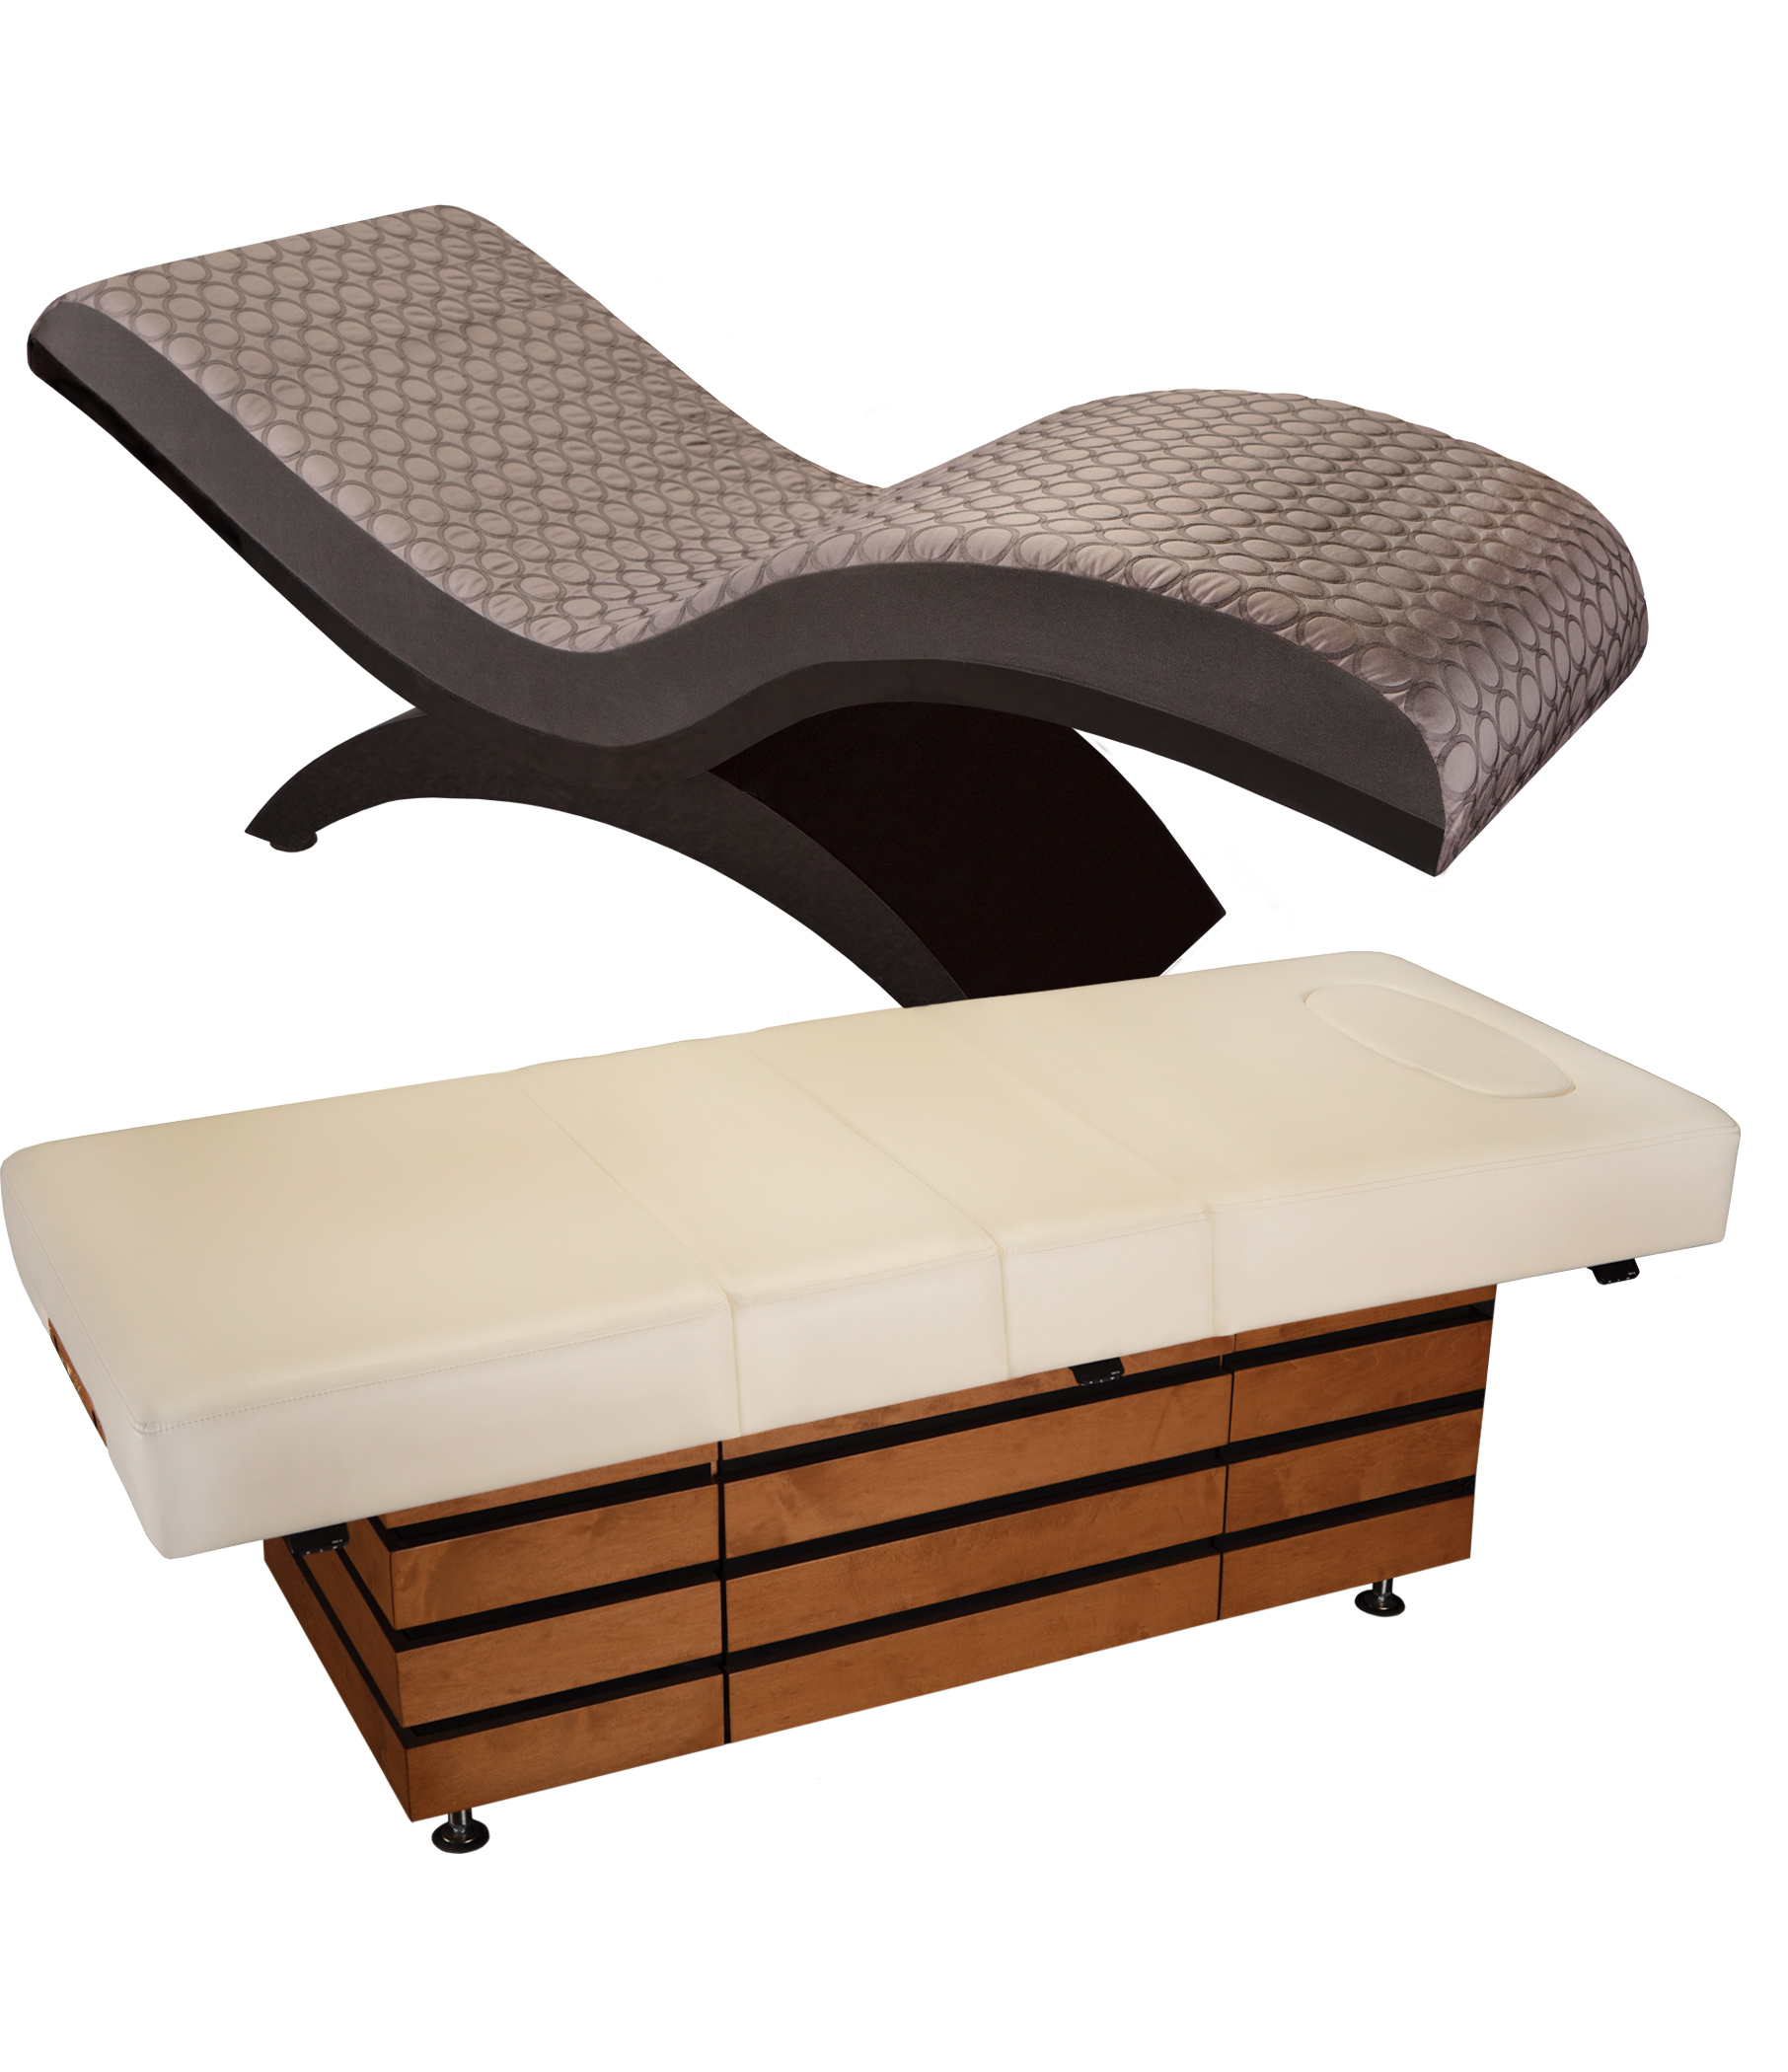 Favorite Treatment Table Manufacturer: Earthlite/Living Earth Crafts